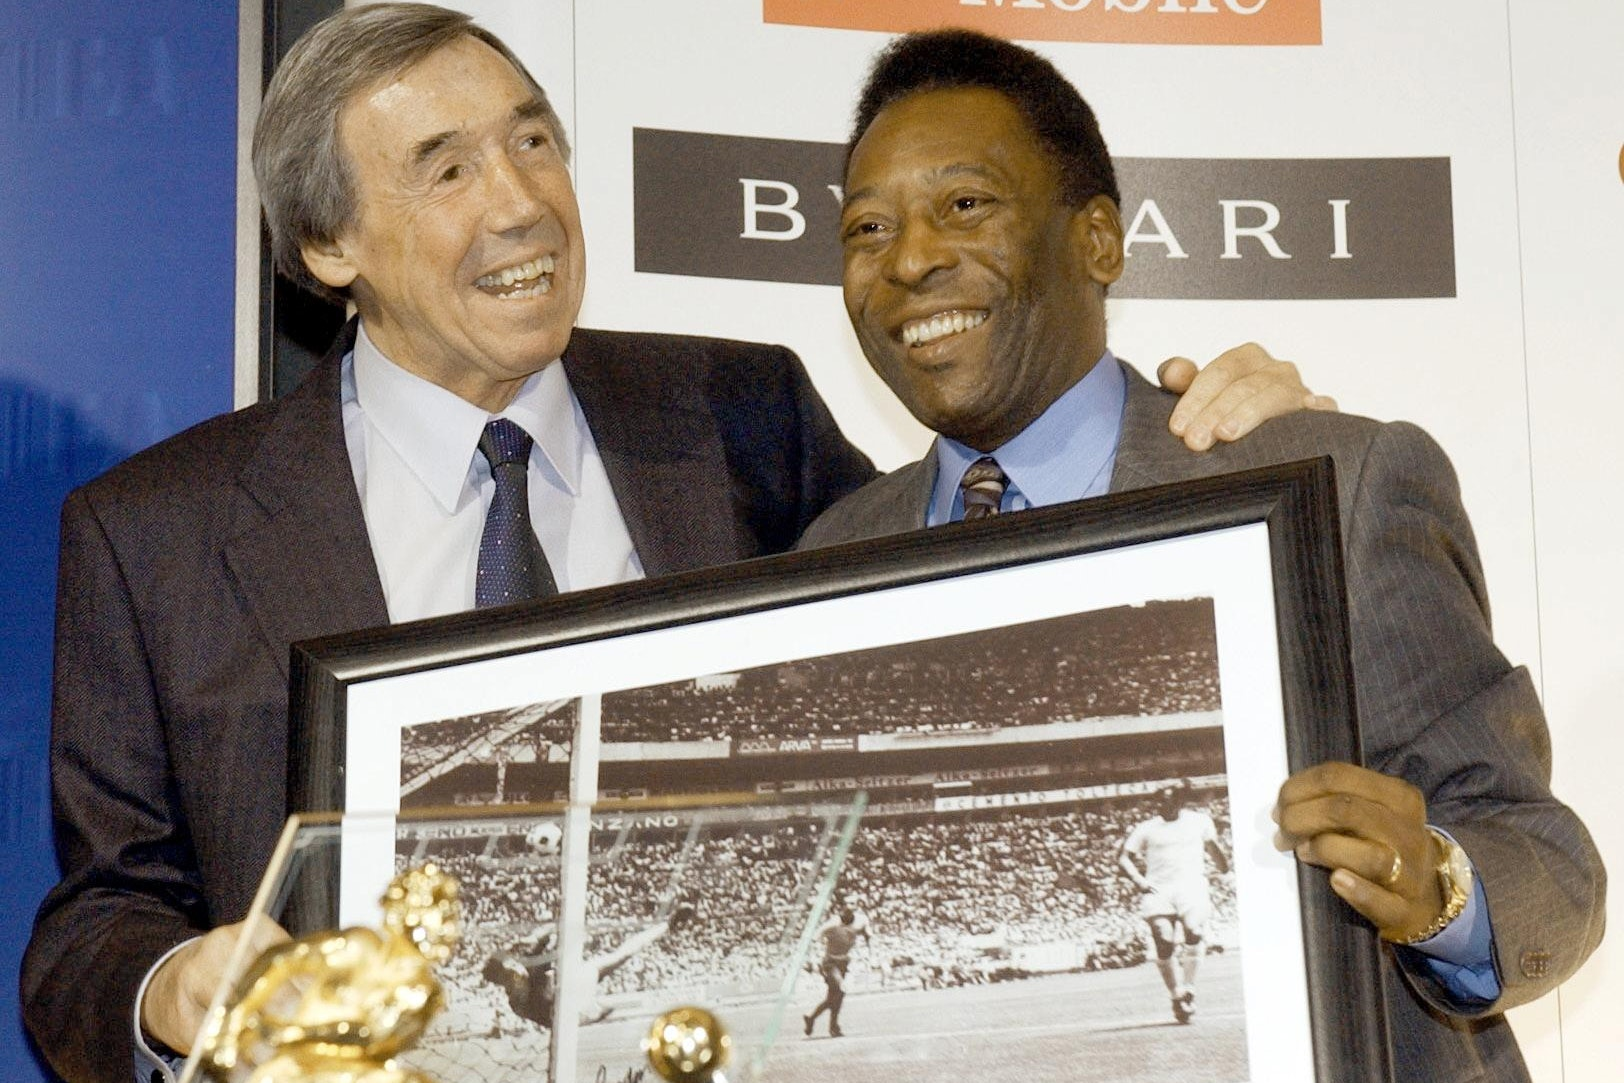 England goalkeeper Gordon Banks, left, produced a brilliant save to deny Pele a goal at the 1970 World Cup finals in Mexico